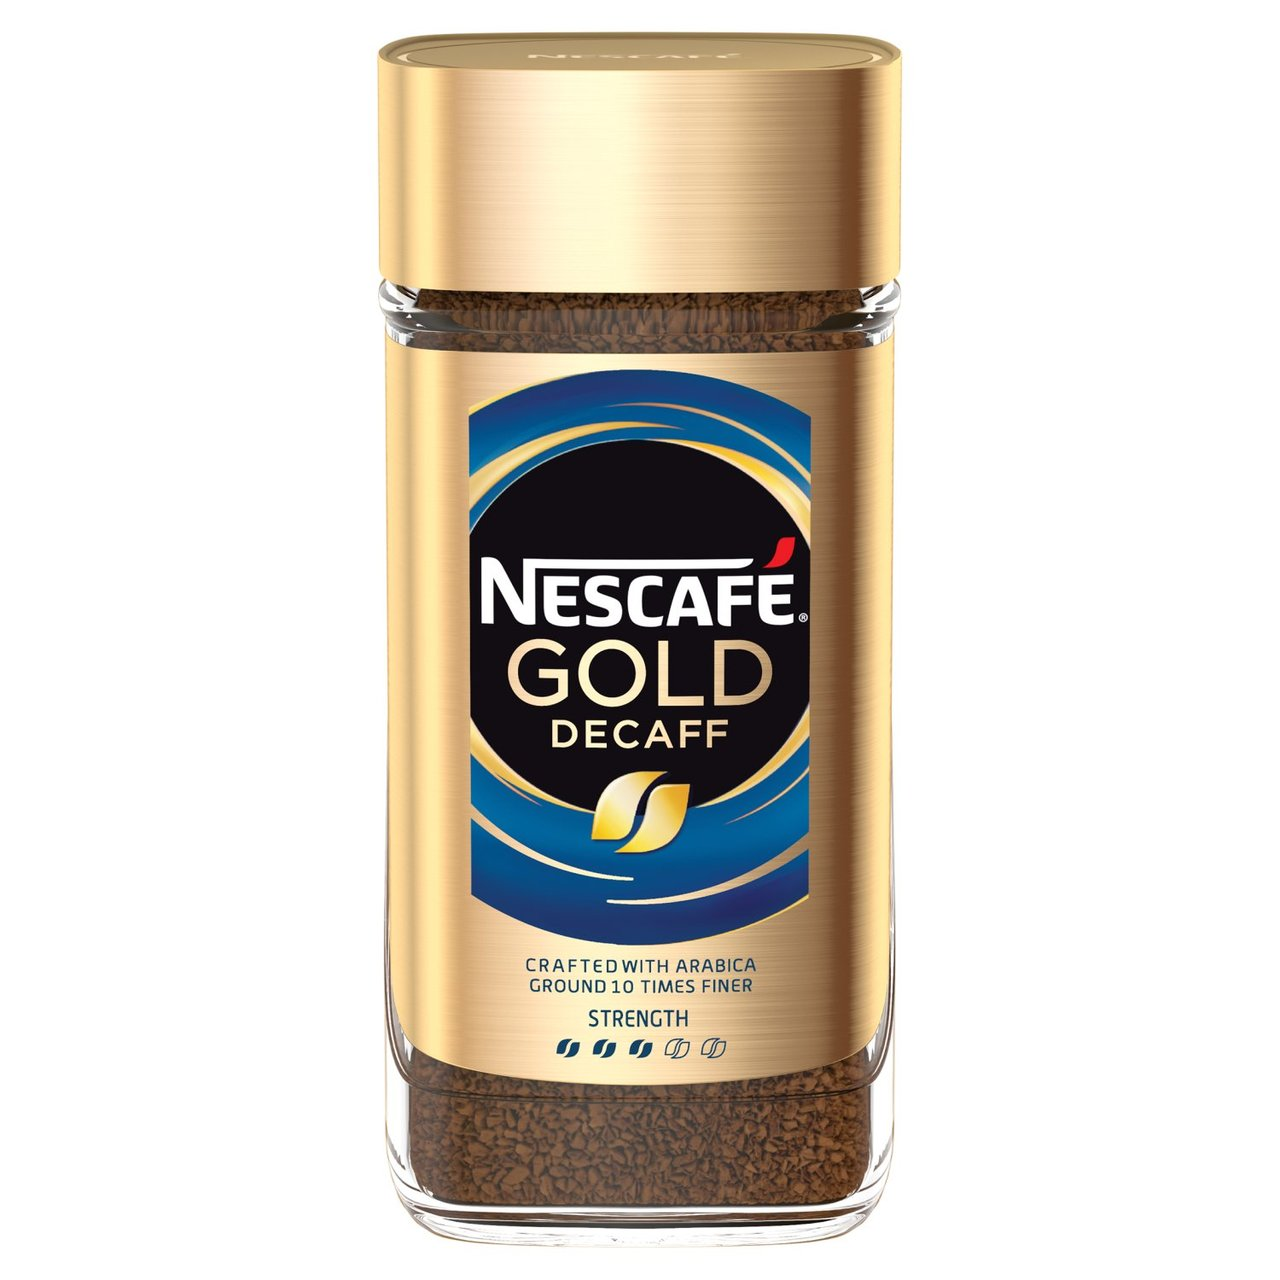 Nescafe Decaffeinated Coffee